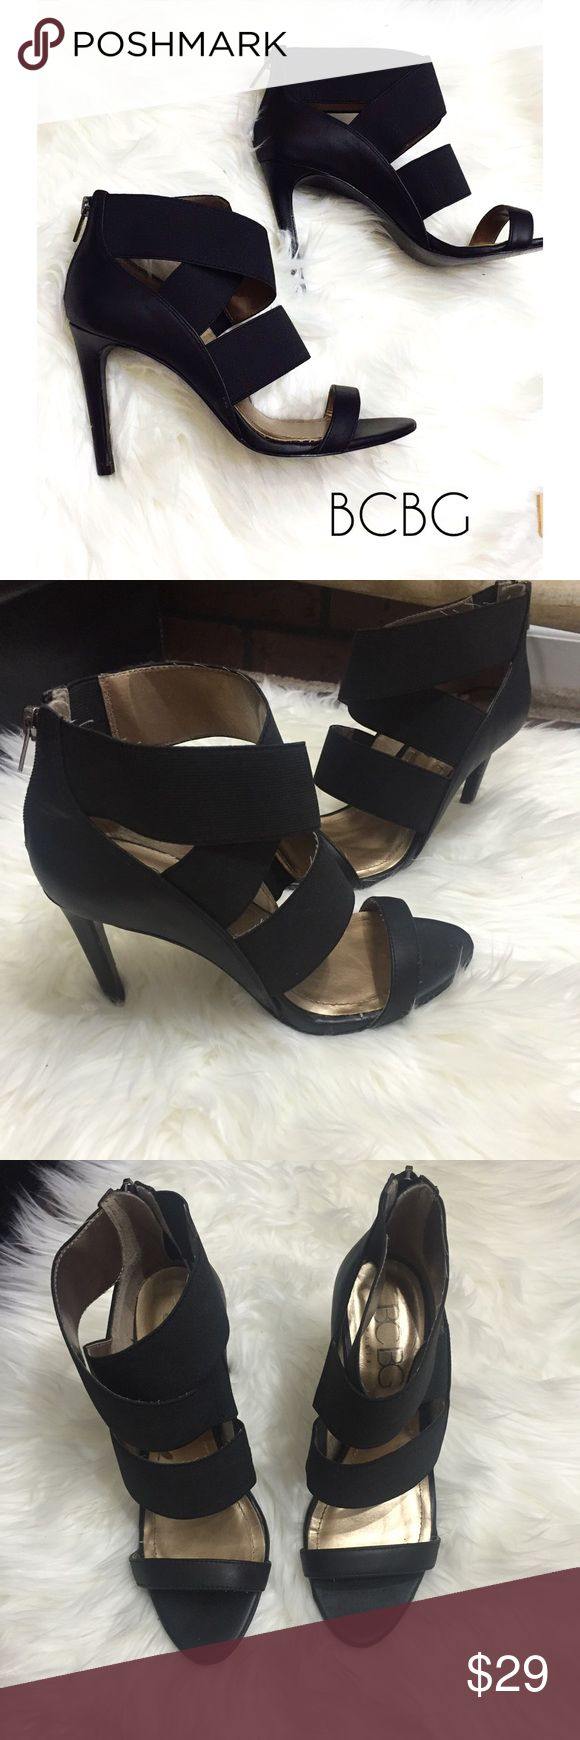 BCBG Paris Black Strappy Heels BCBG Paris, size 7, black Strappy heels. Excellent condition. 3.75 inch heel.  BCBG Shoes Heels